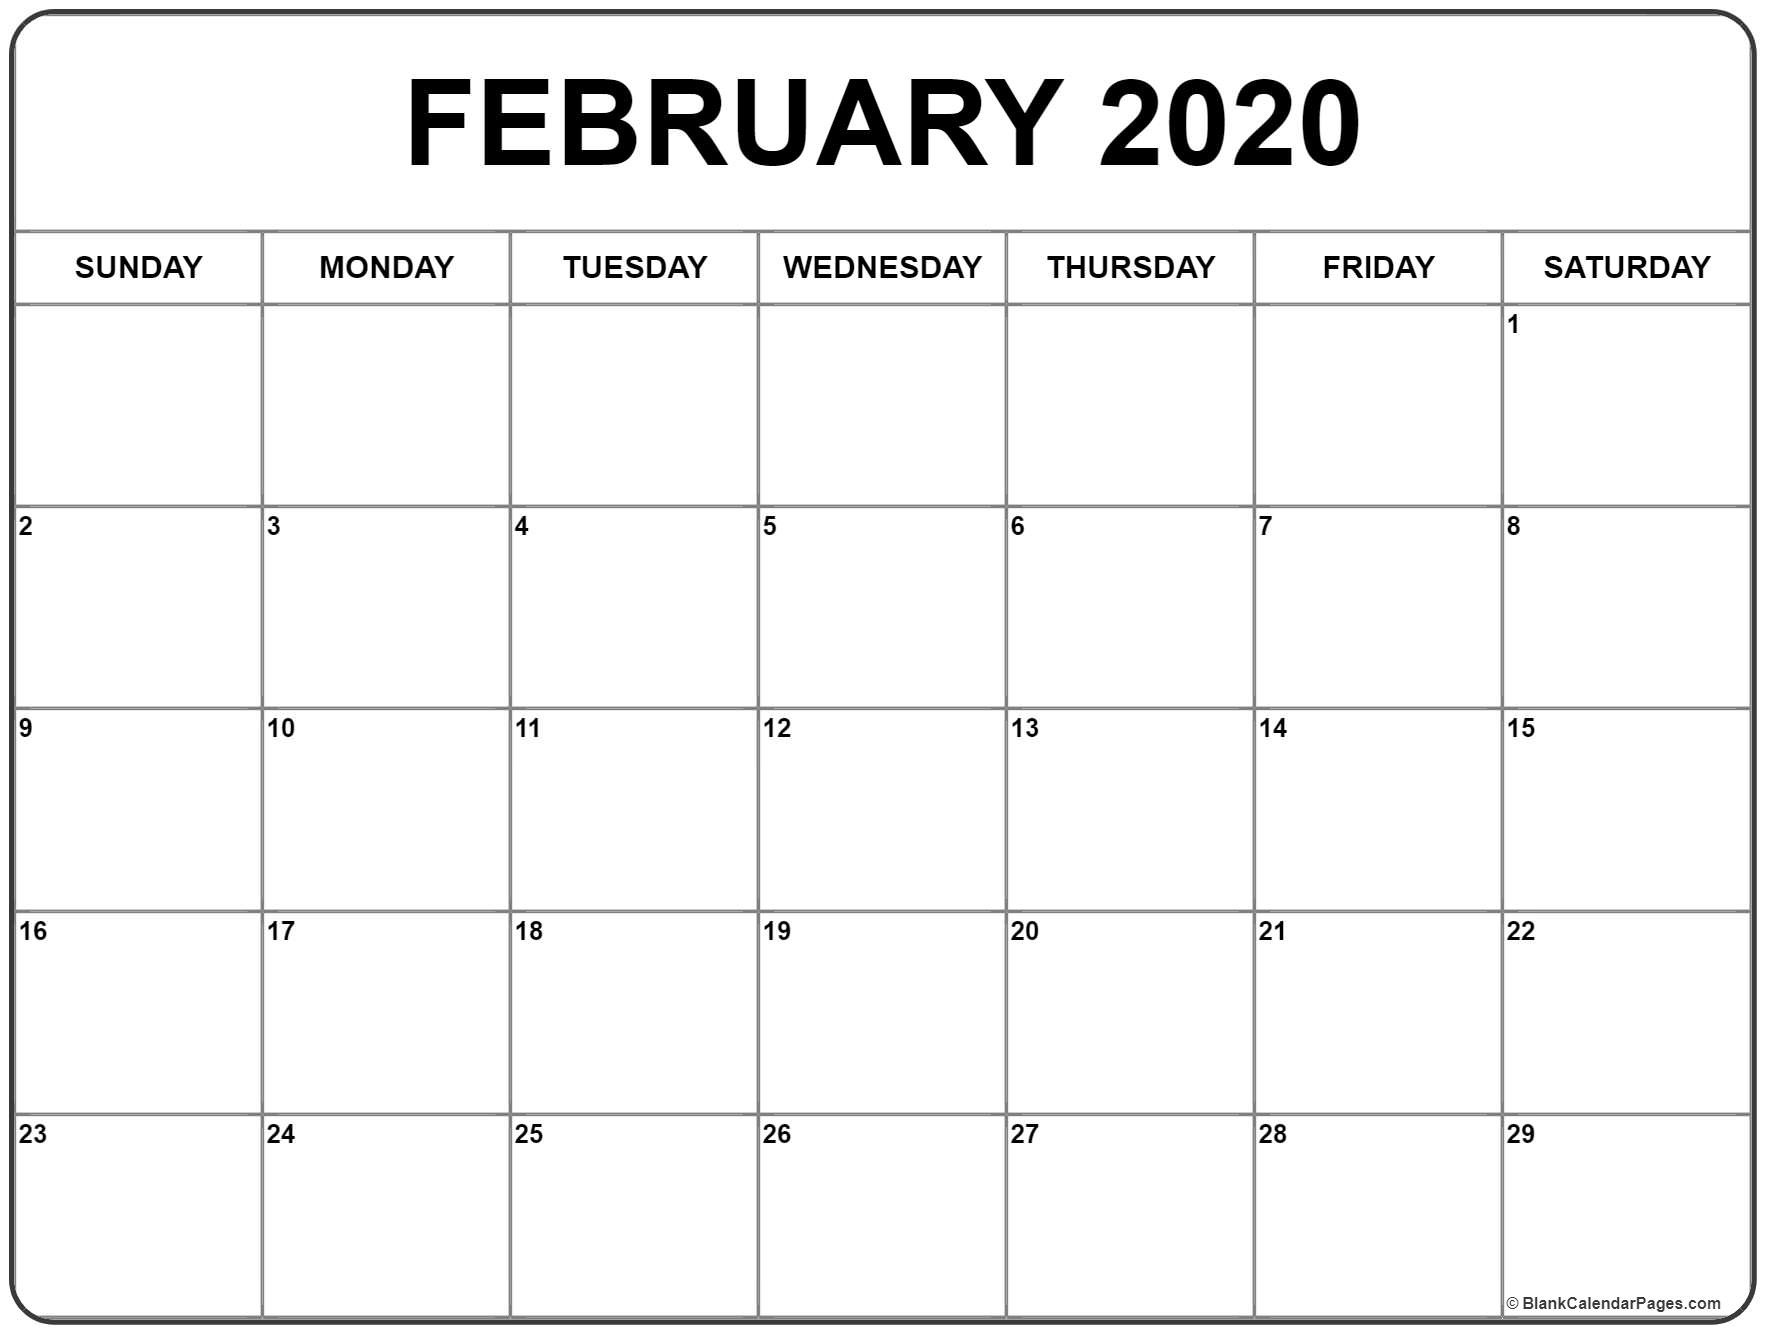 2020 Calendars To Fill In - Calendar Inspiration Design-Fill In The Blank 2021 Calendar With Scripture